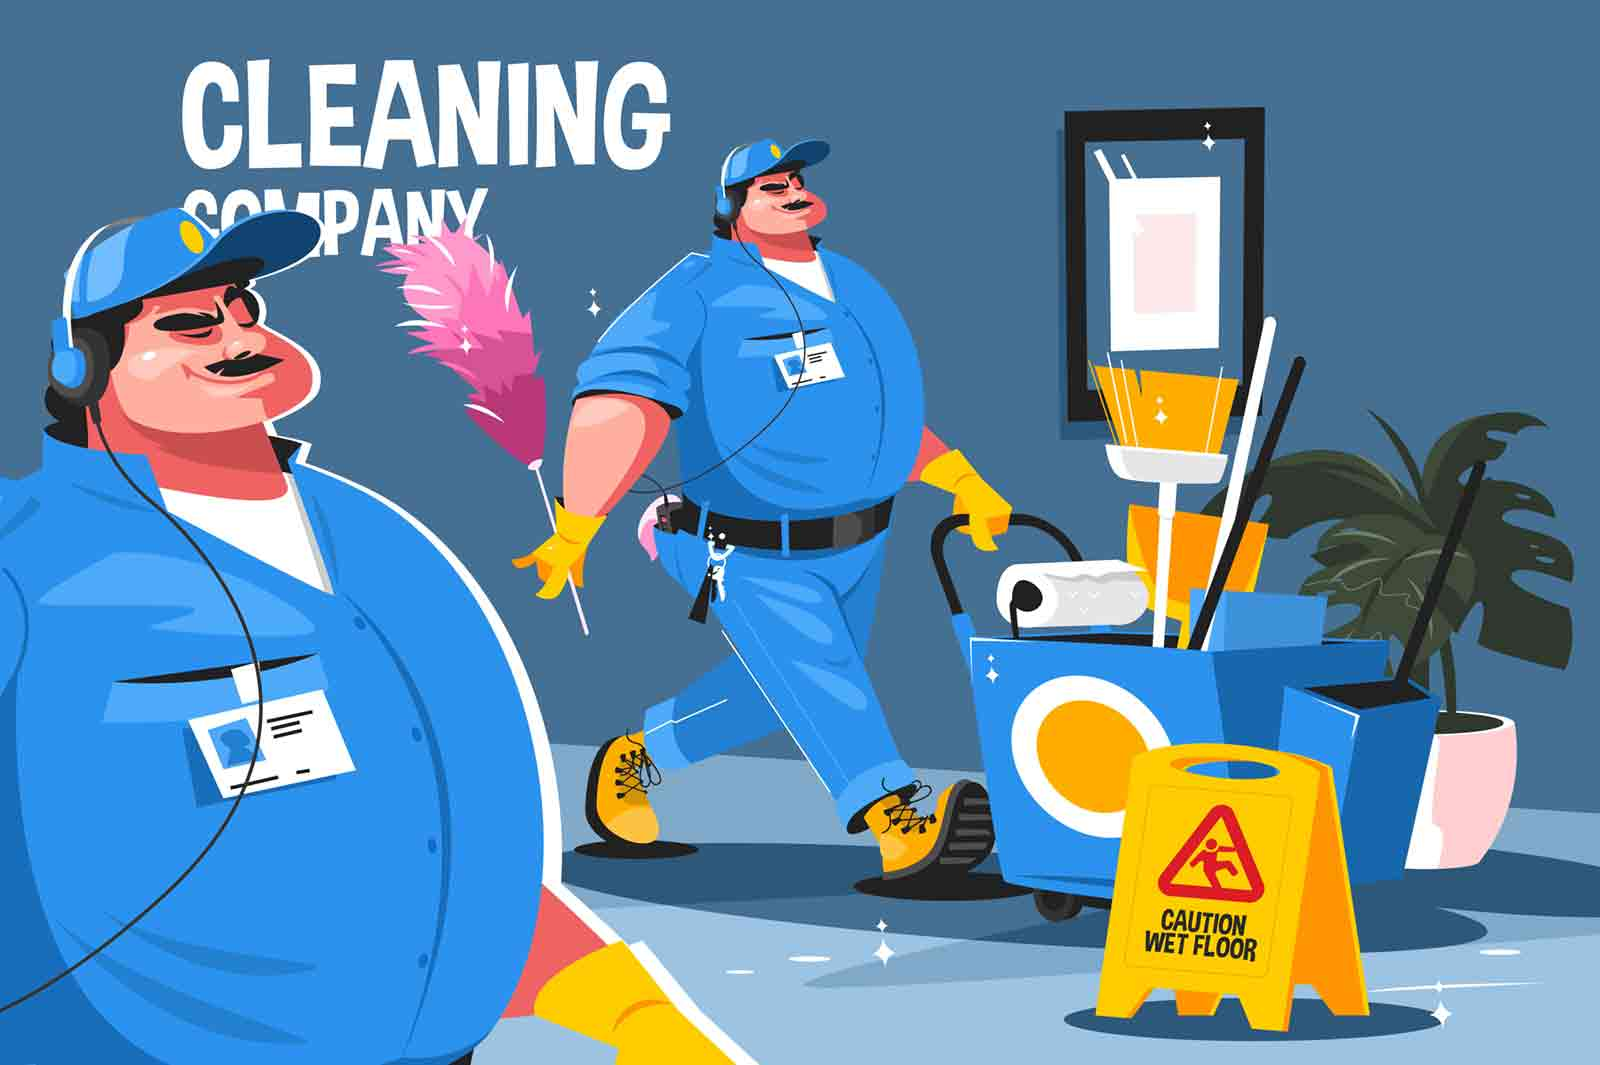 Cleaning company service vector illustration. Professional cleaners in uniform clean office with special tools, equipment and cleaning products flat style concept